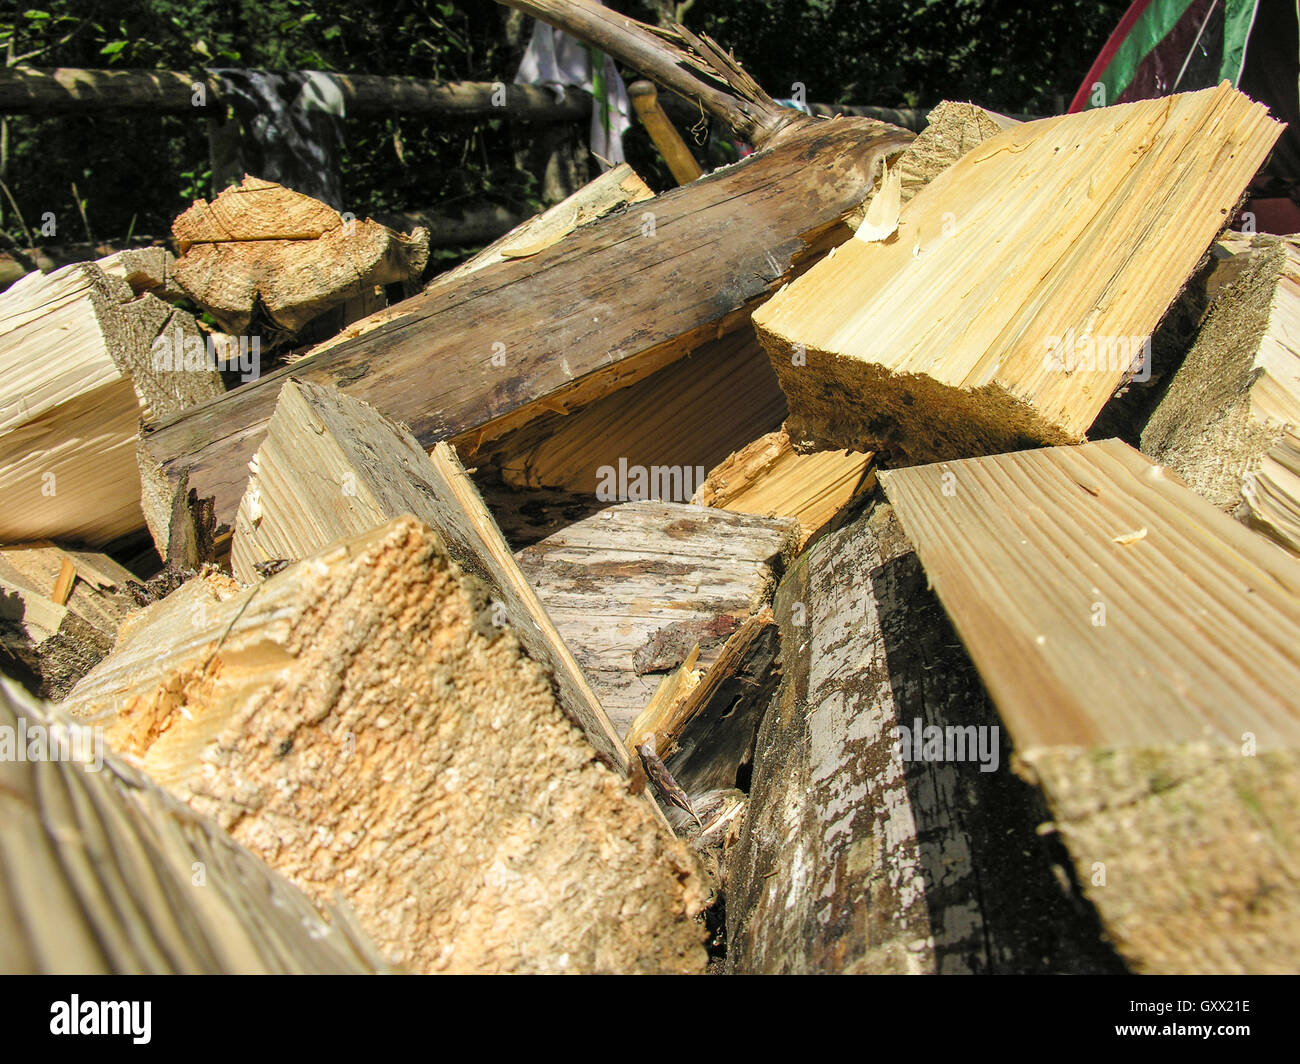 Firewood for the fire are in the mess tent - Stock Image